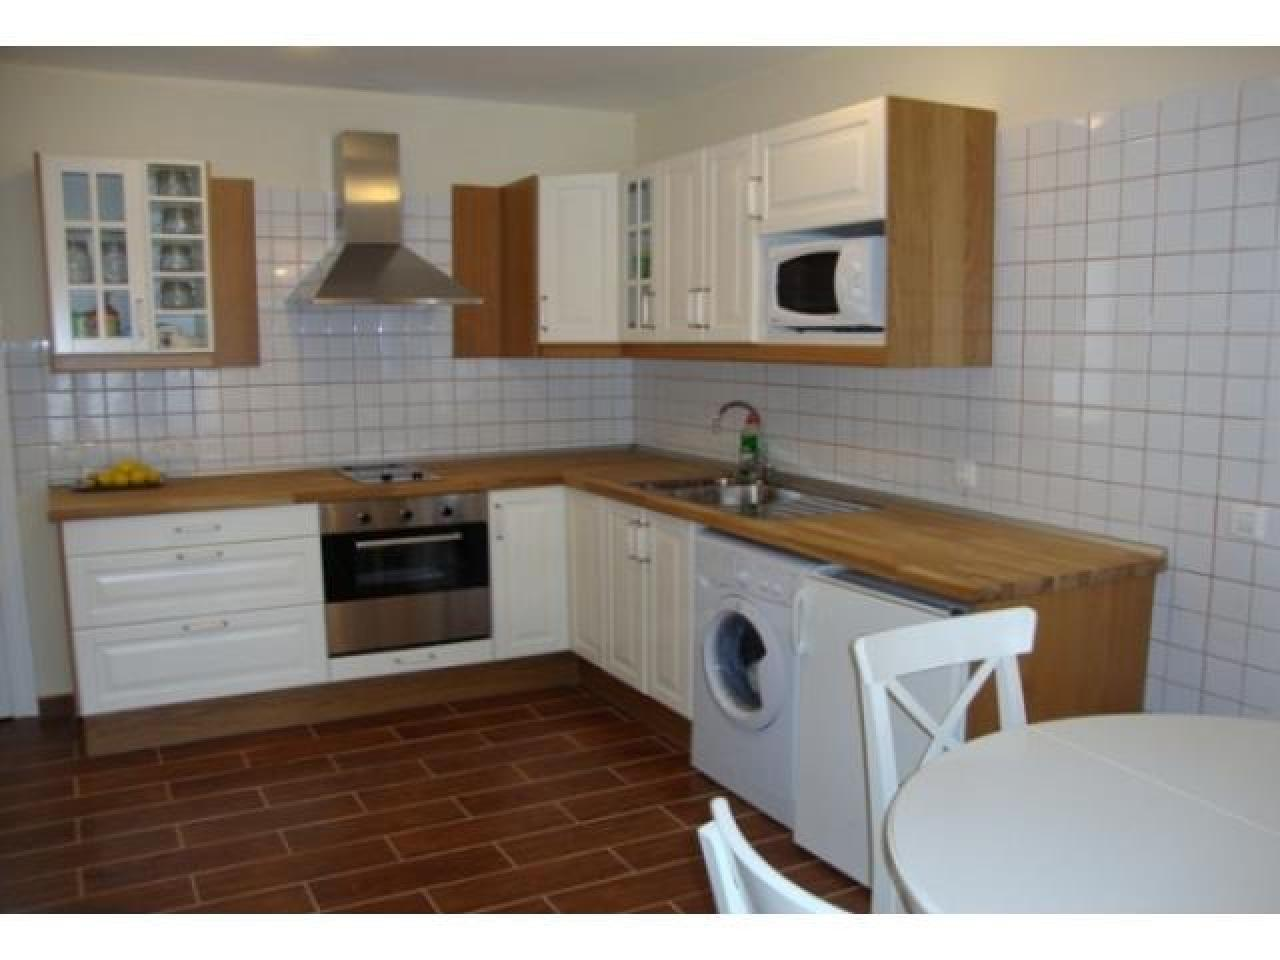 Real estate in Tenerife for sale » #274 - 3